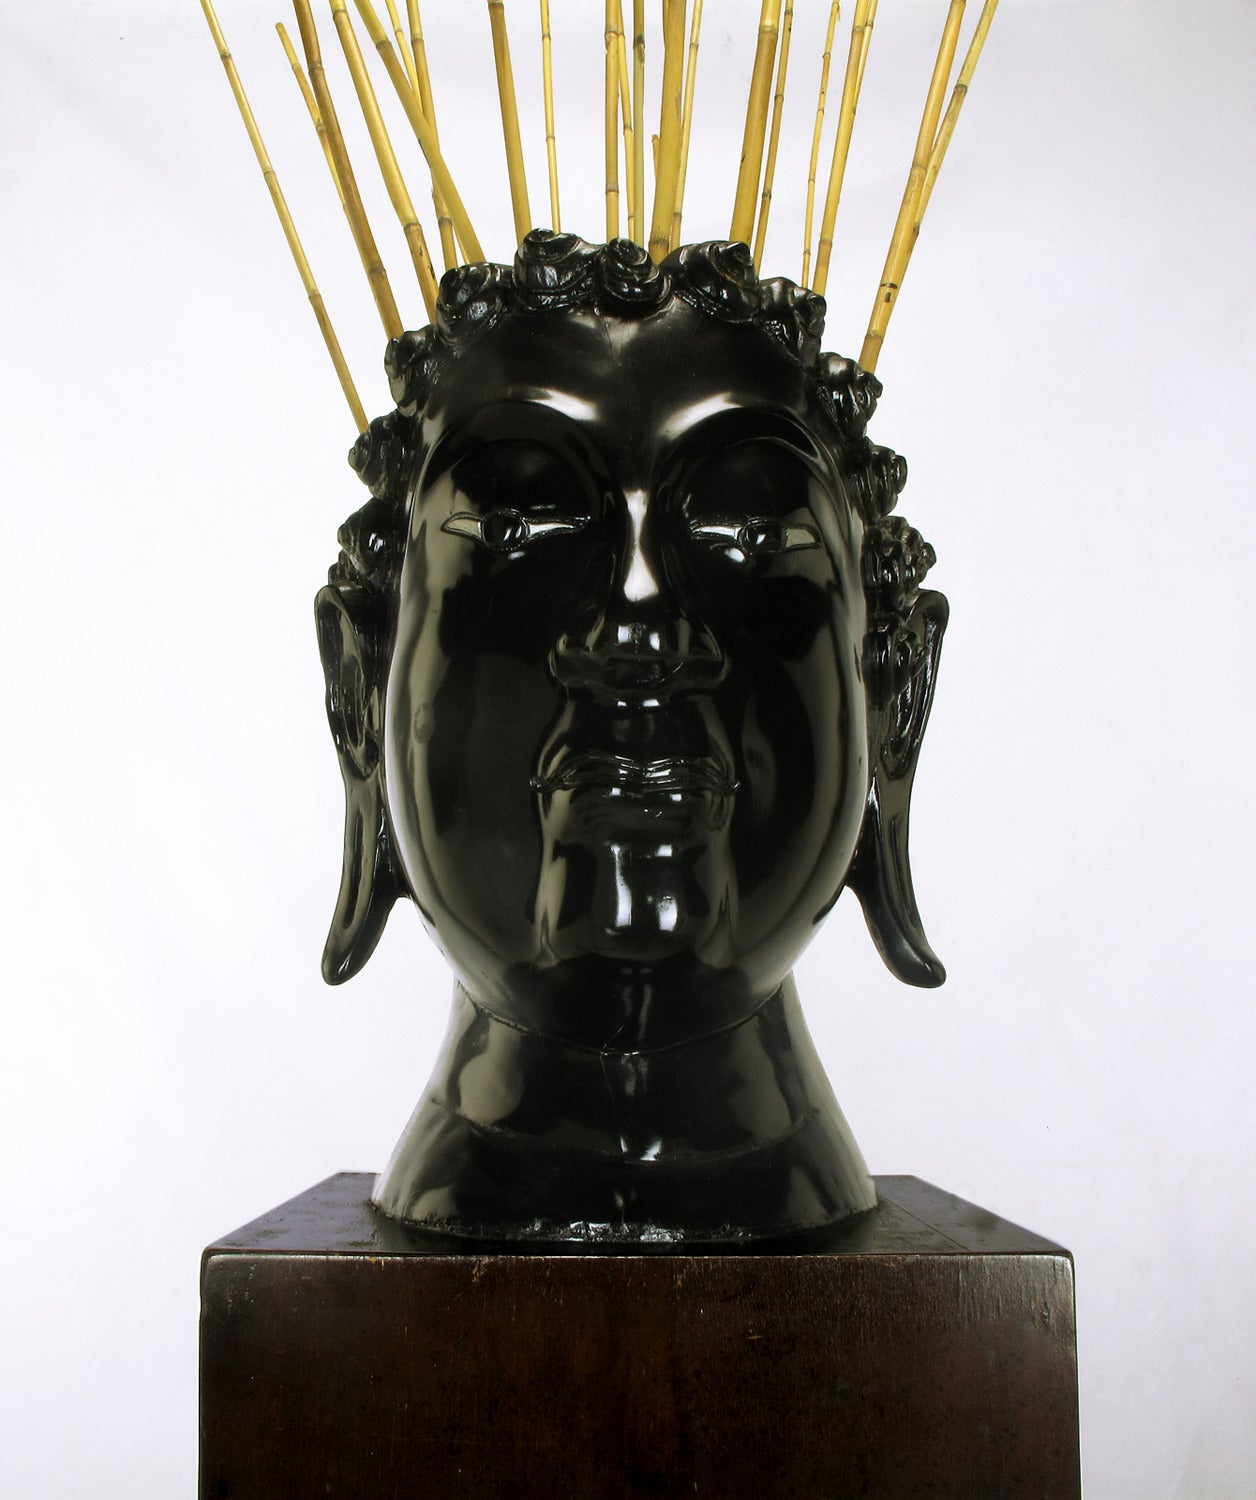 Buddha-Form Mahogany and Black Lacquer Sculpture on White Lucite Pedestal For Sale 3